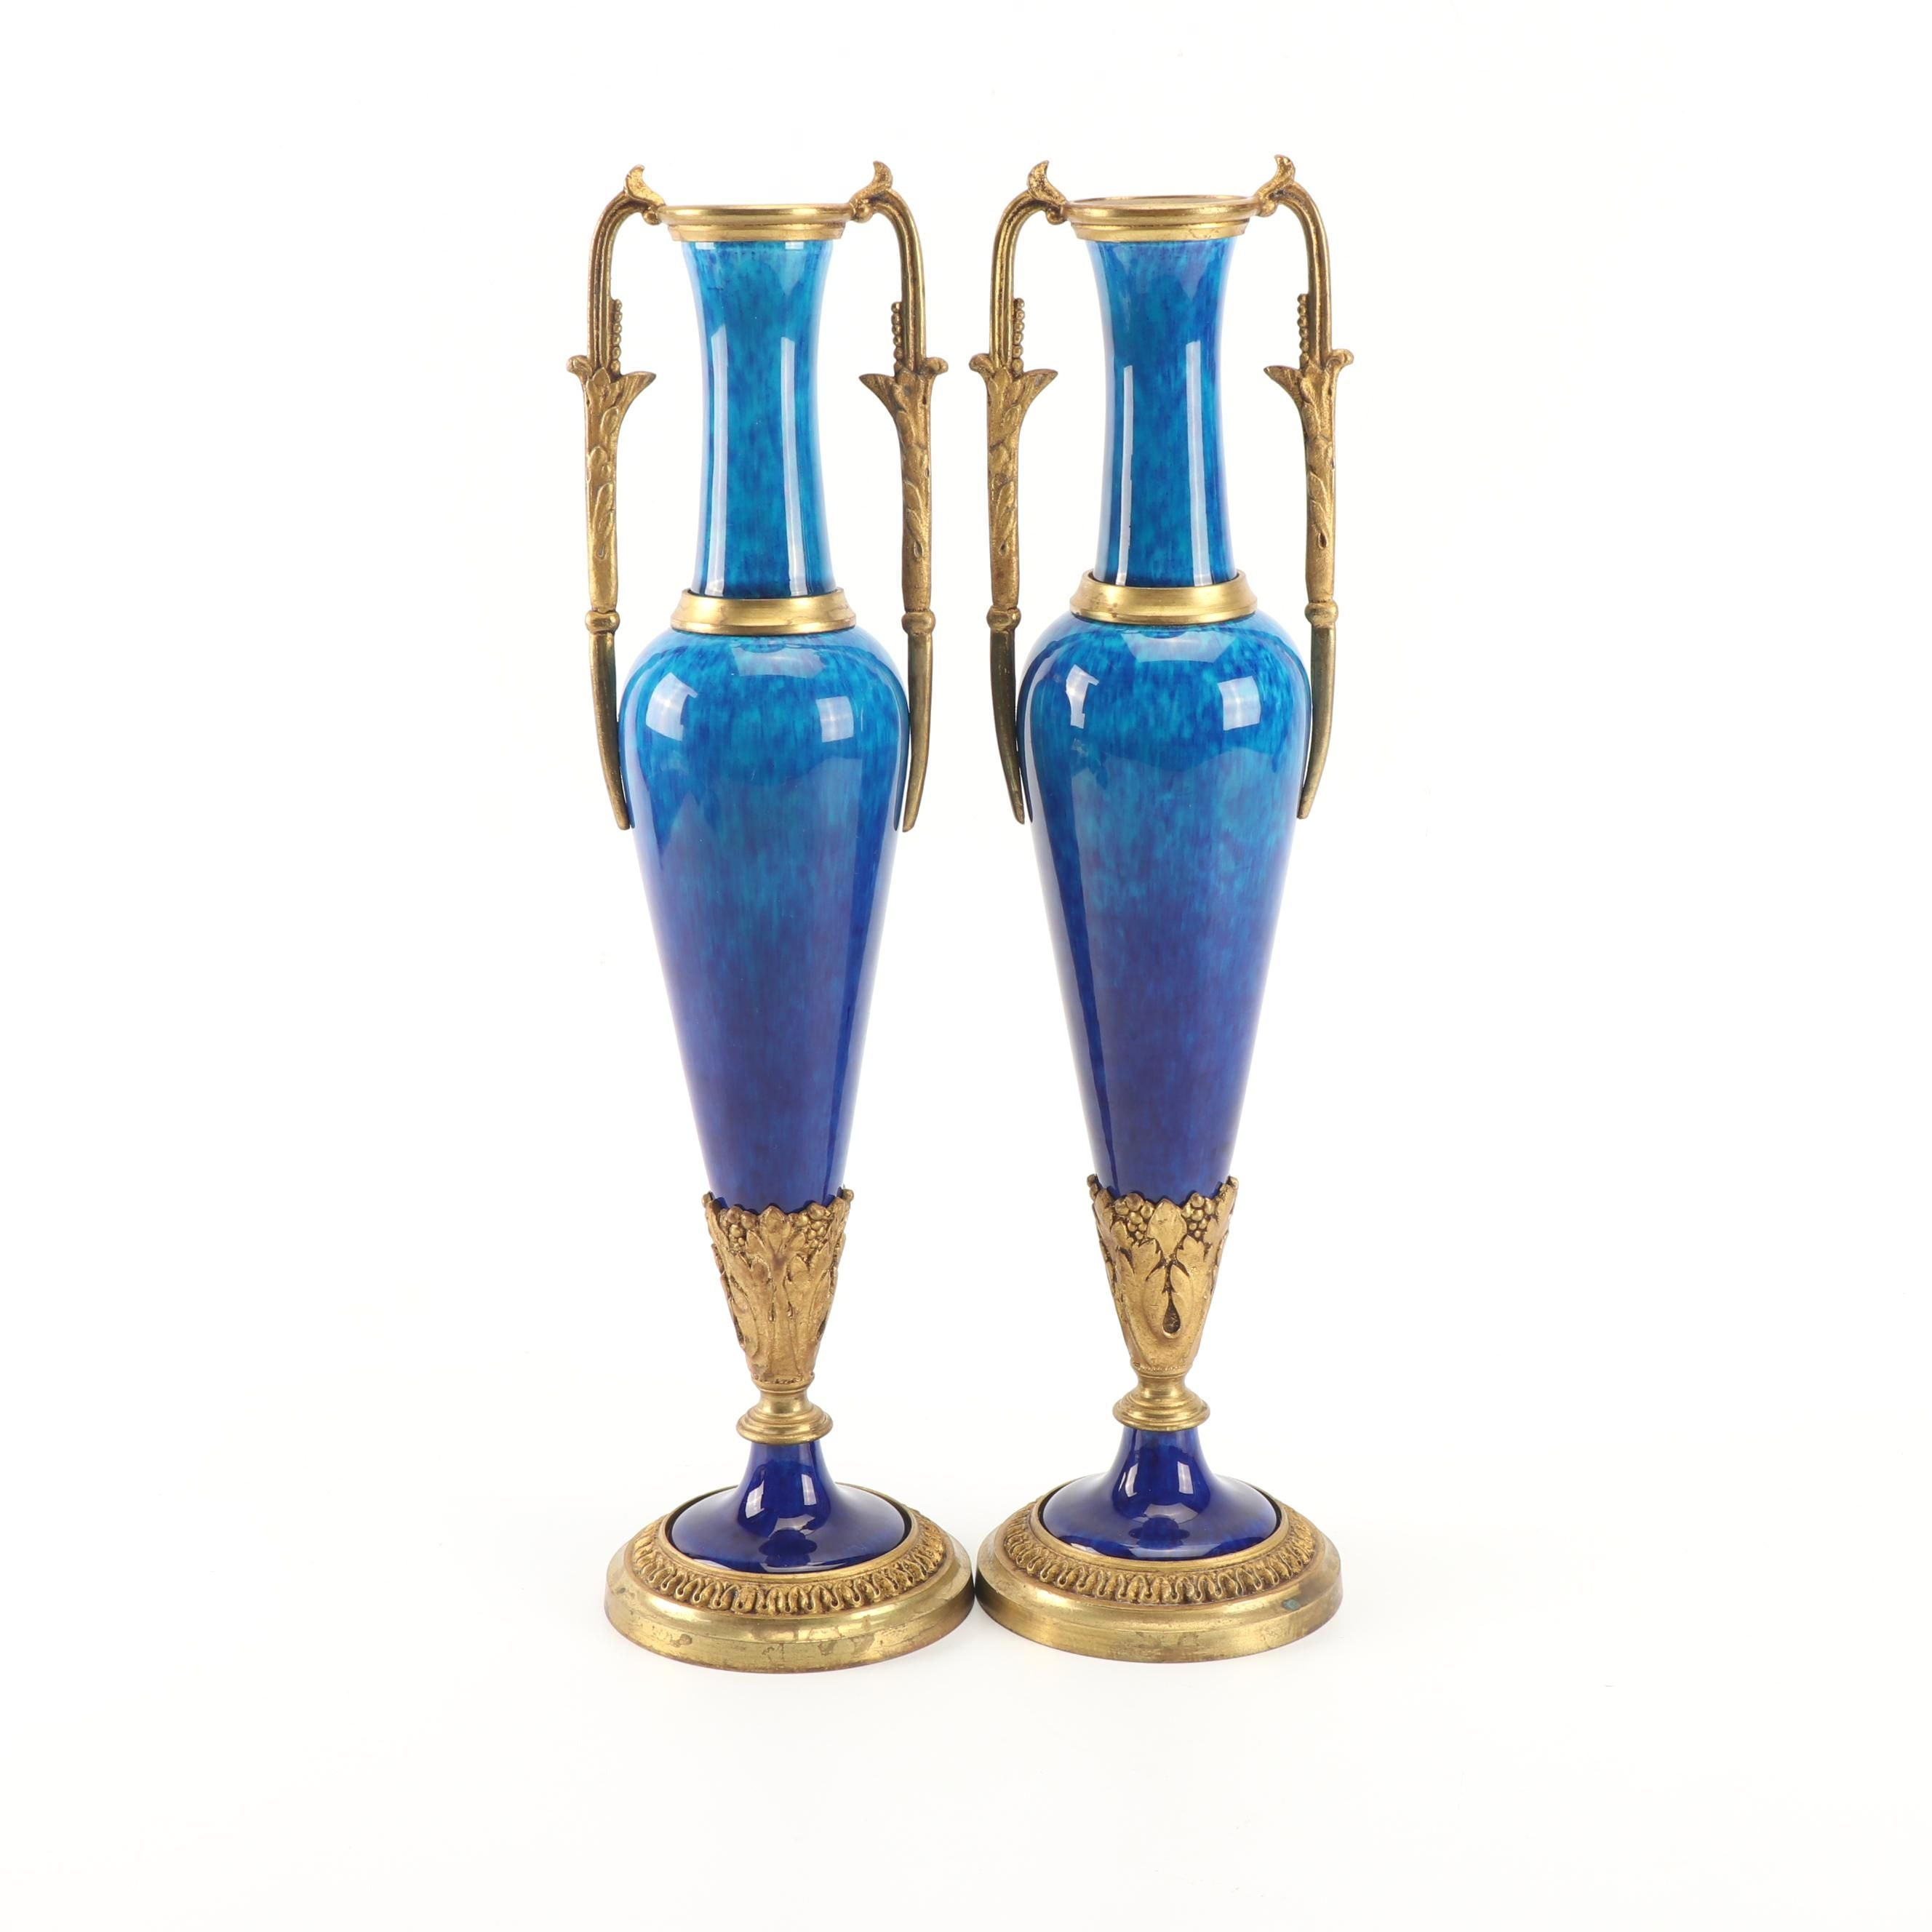 Pair of French Glazed Ceramic and Brass Mounted Mantel Urns, Early 20th Century